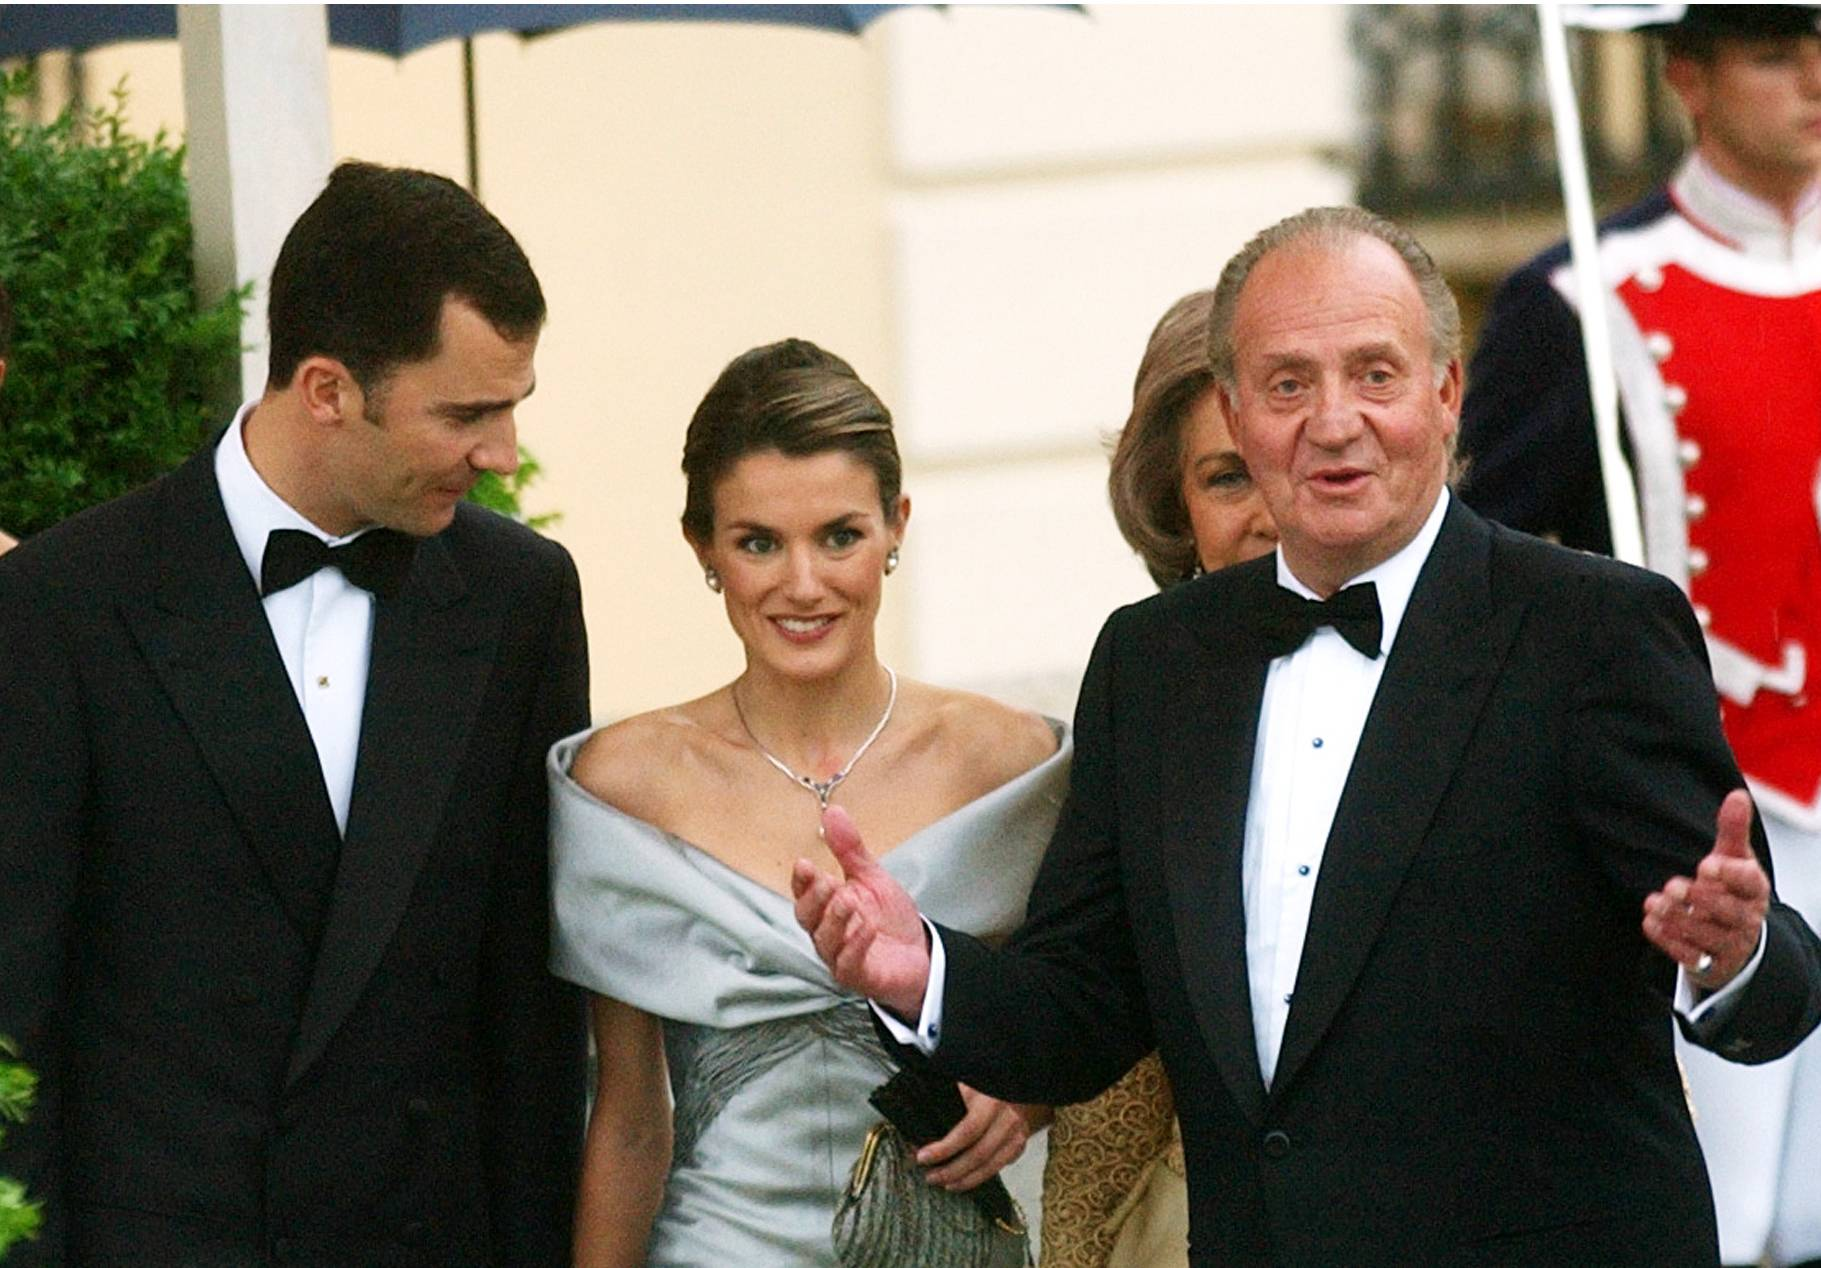 Spain's Princess Letizia and Prince Felipe aer seen a day before their wedding day with King Juan Carlos, right, in Madrid on May 21, 2004. Carlos plans to abdicate and pave the way for his son, Felipe, to become the country's next king.